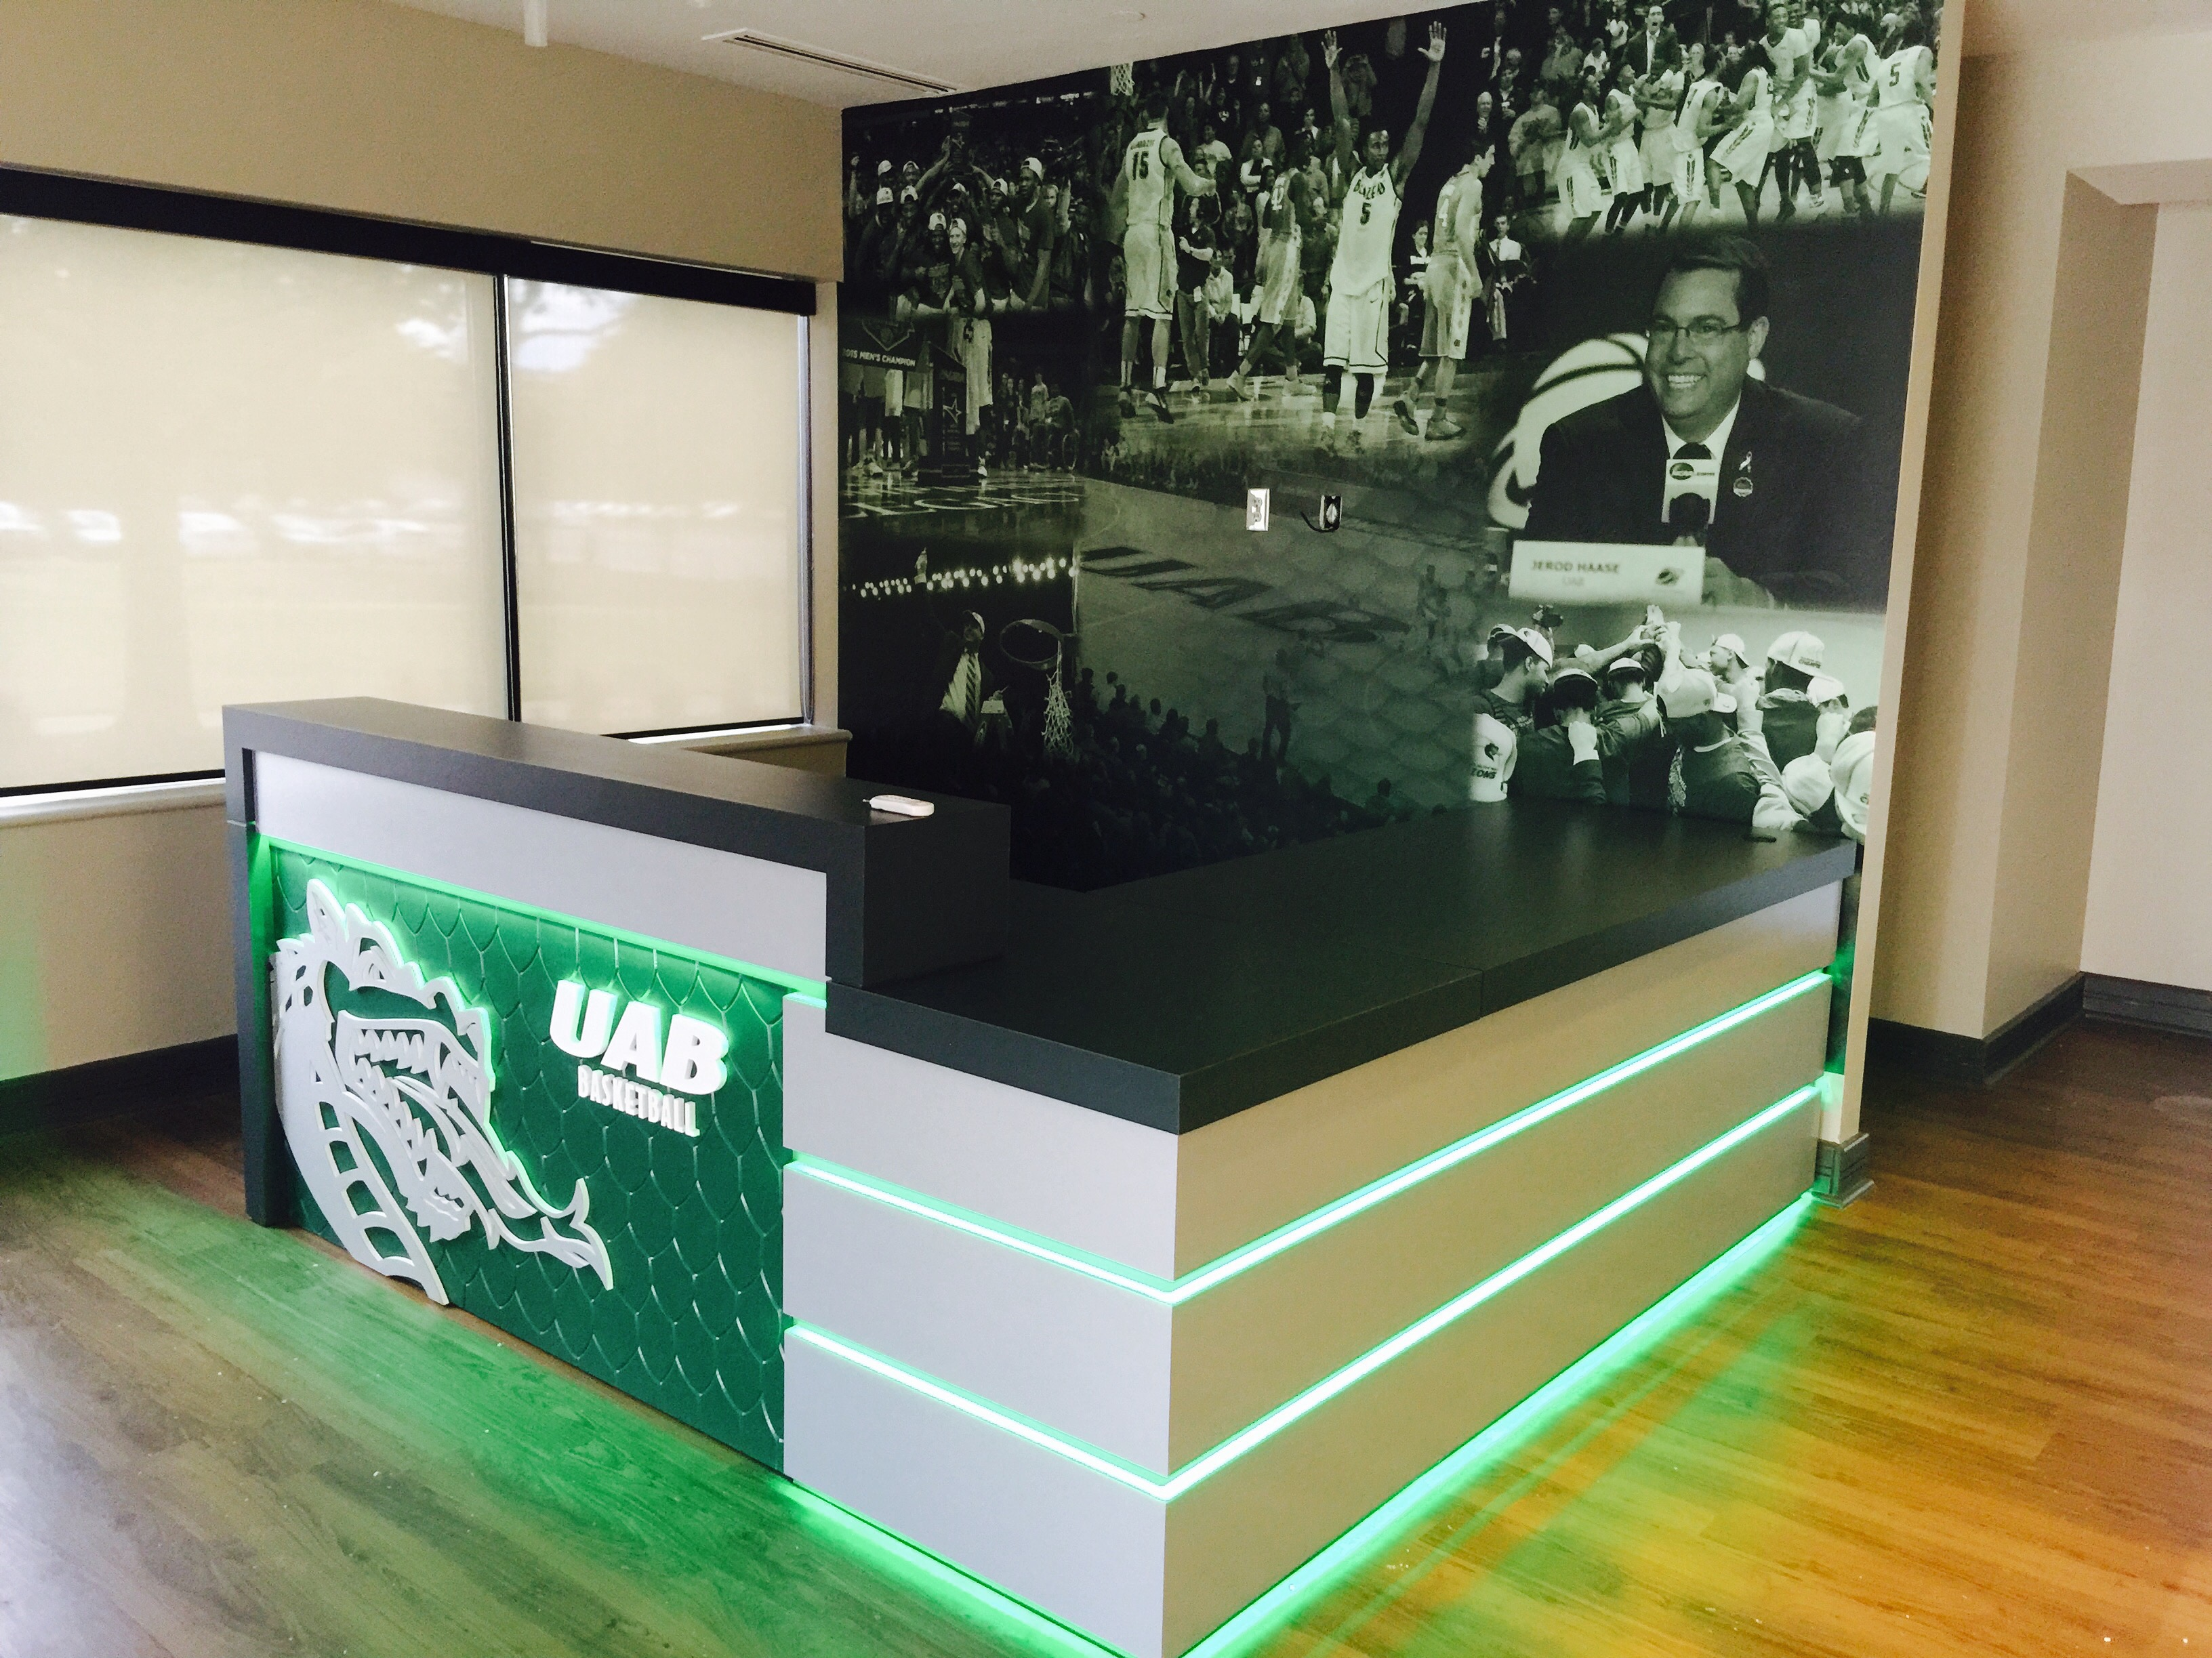 UAB reception desk